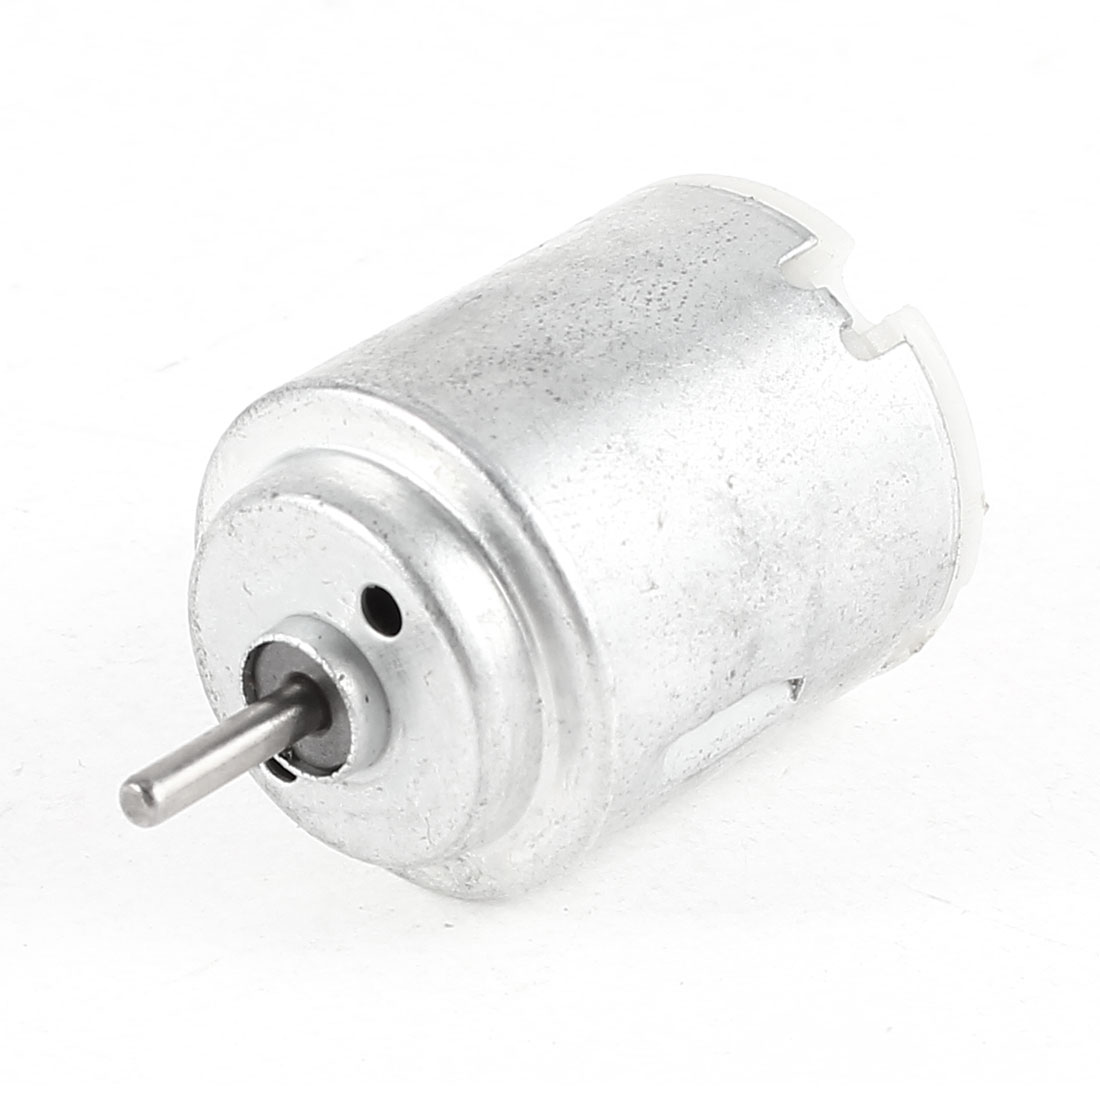 Electric Mini Motor DC 1.5-6V 7500RPM 25x20mm for RC Model Toys DIY